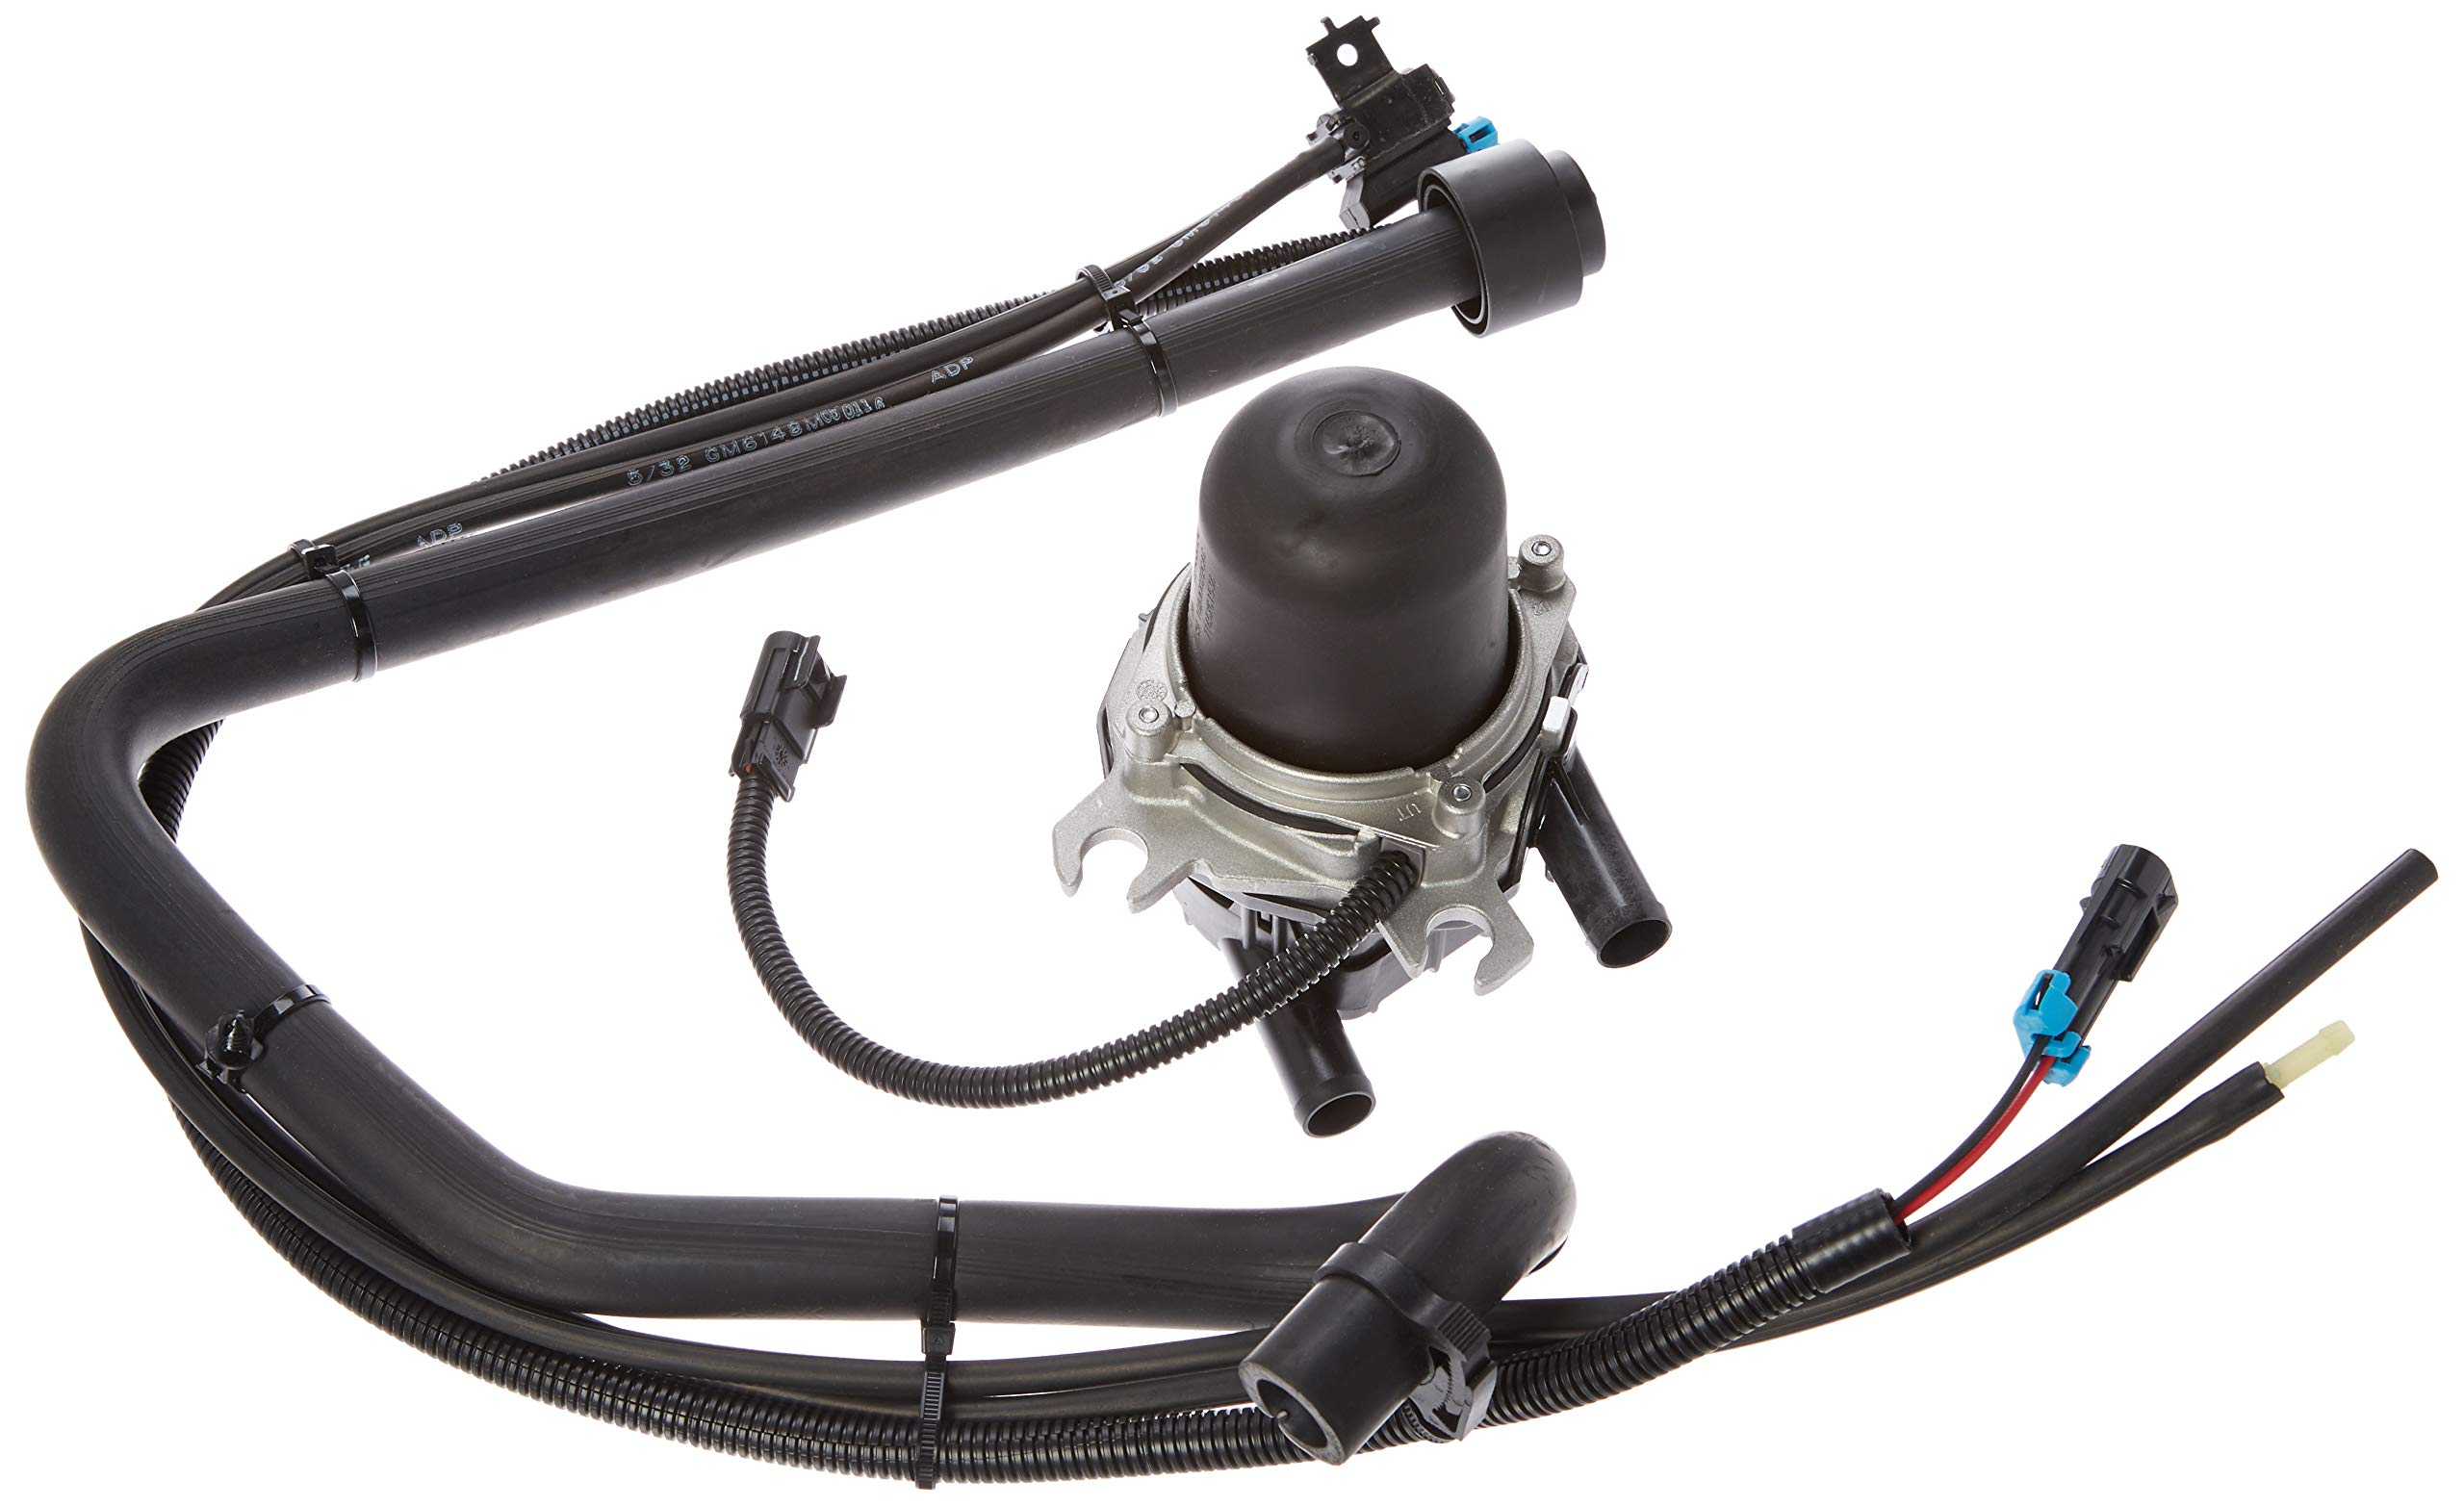 Standard Motor Products AIP1 Air Pump by Standard Motor Products (Image #1)